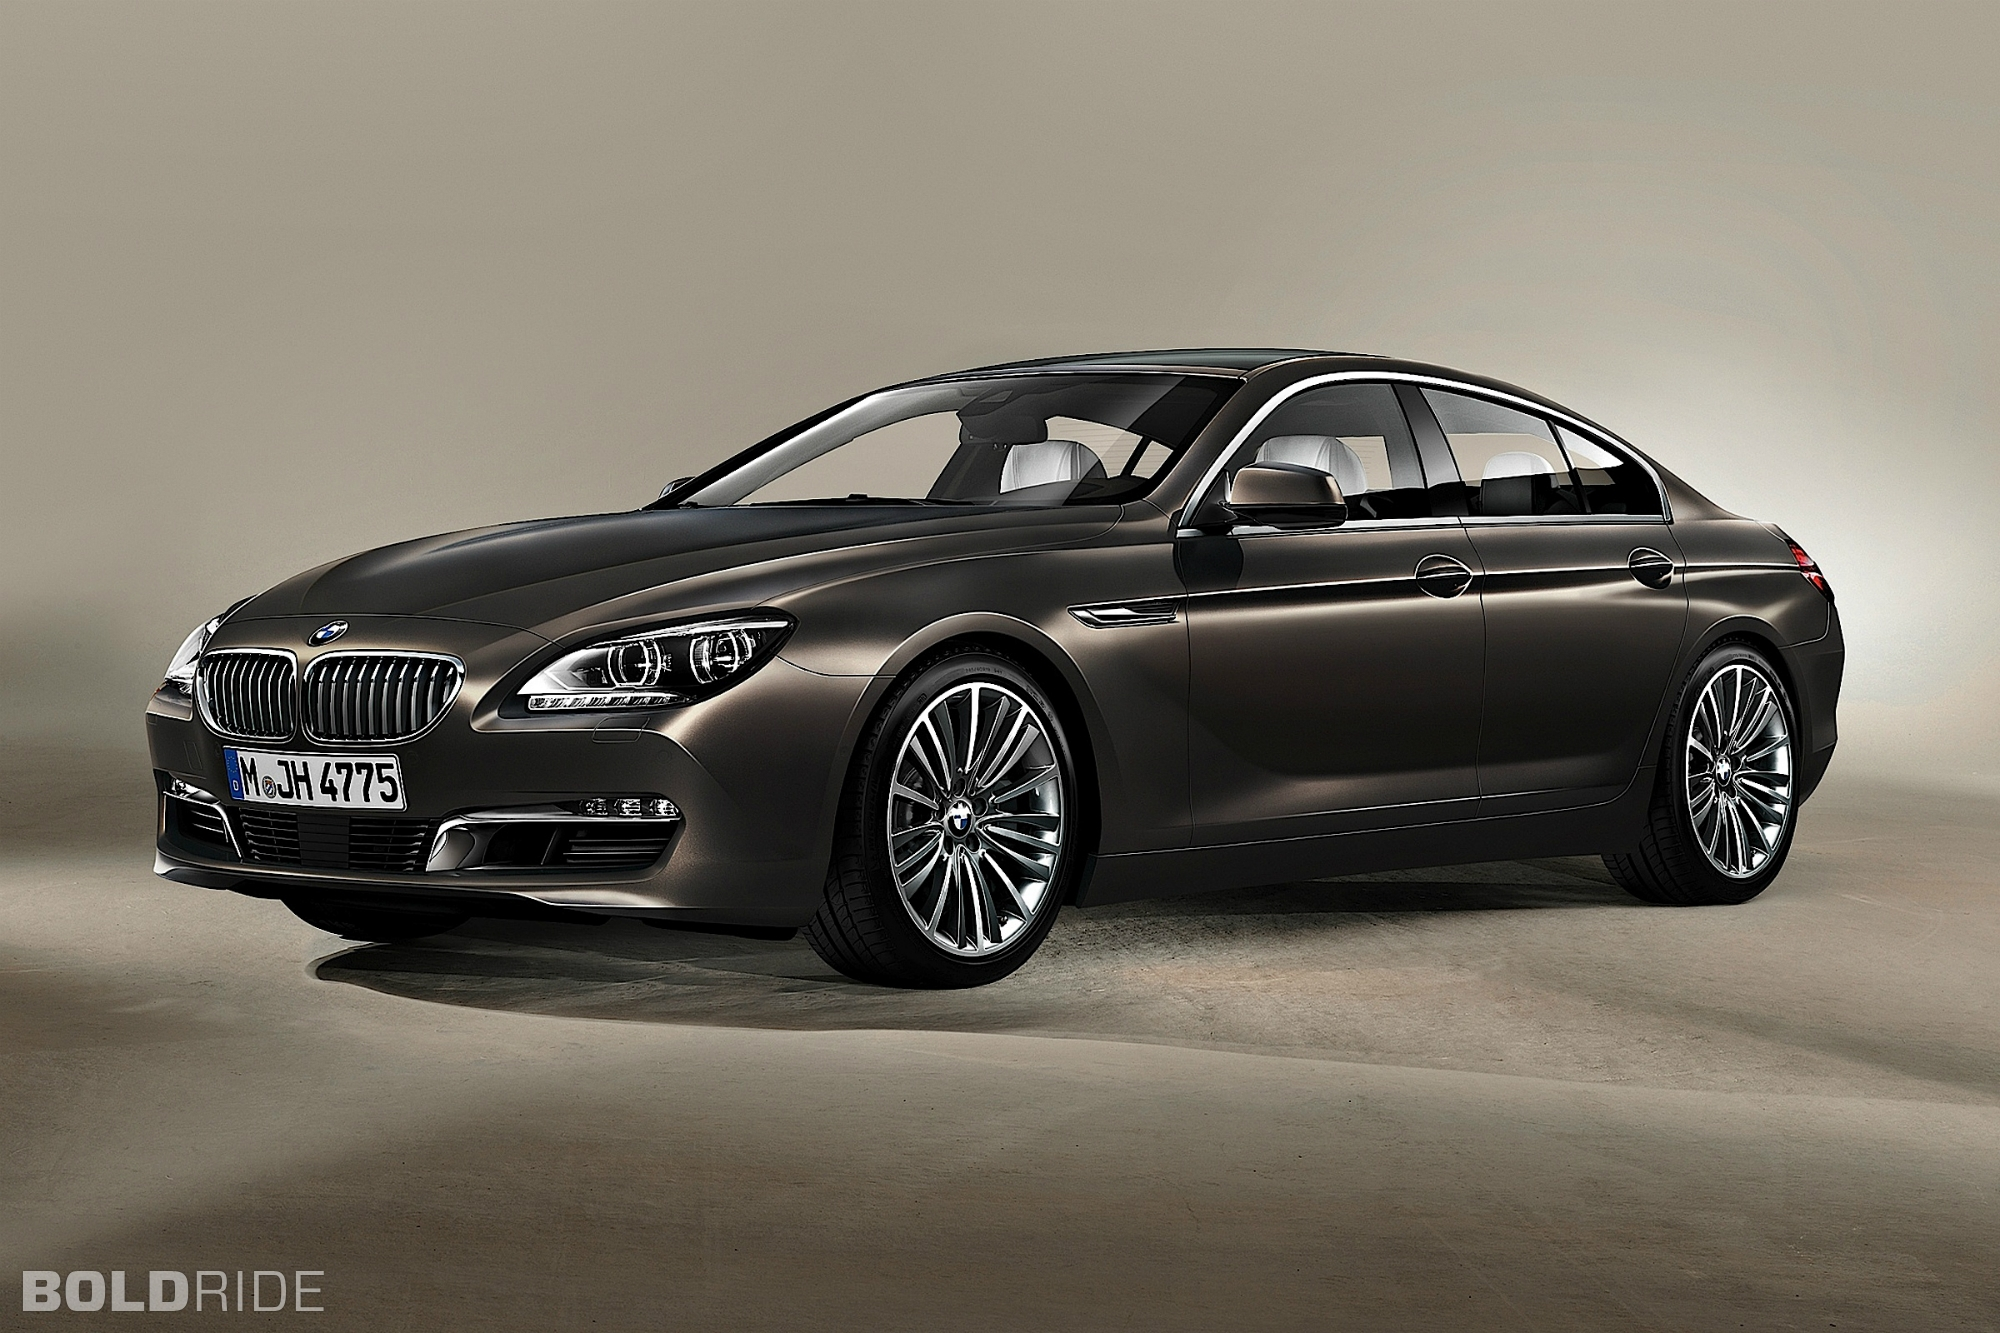 2013 Bmw 6 Series Gran Coupe #3